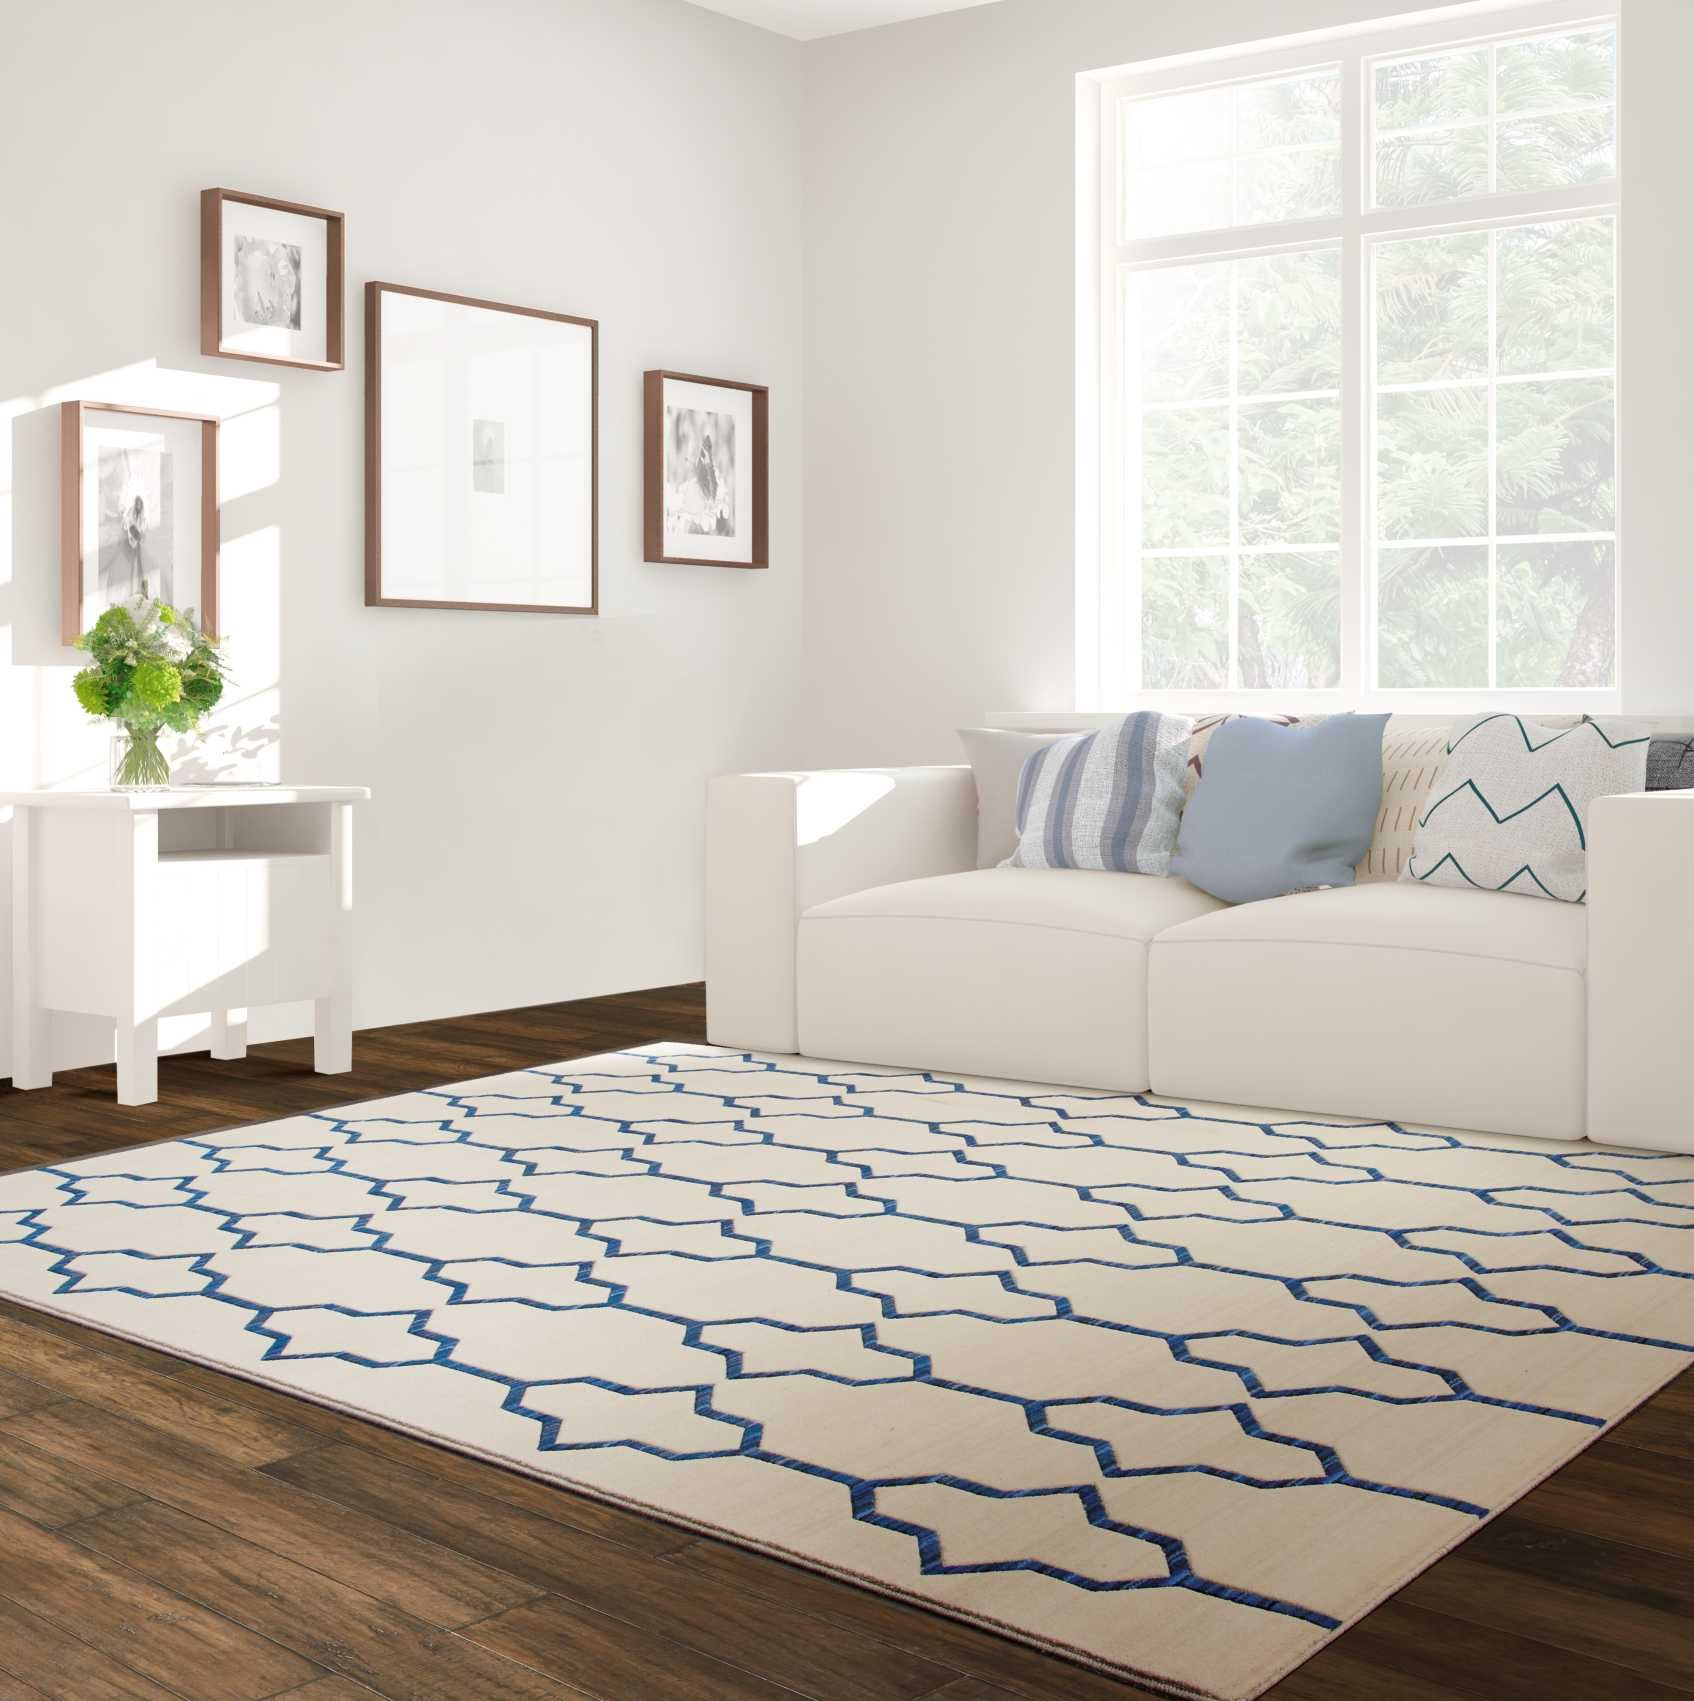 Butera Collection Bb205 Ivory Navy Butera Collection Barclay Butera Brands Products Rugs Living Spaces Rug Design